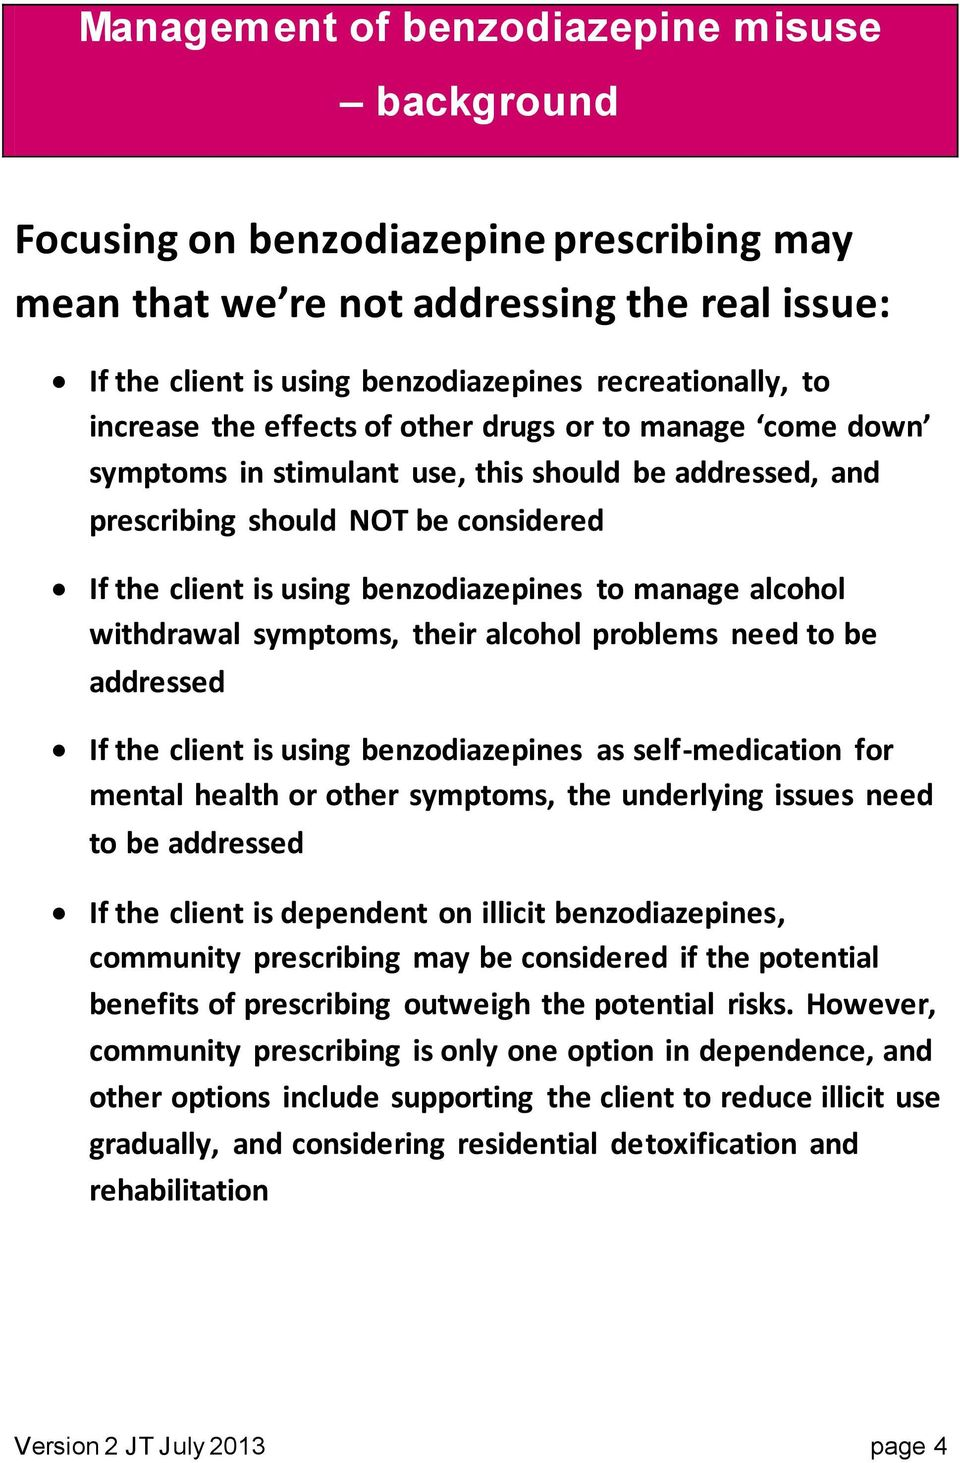 alcohol problems need to be addressed If the client is using benzodiazepines as self-medication for mental health or other symptoms, the underlying issues need to be addressed If the client is